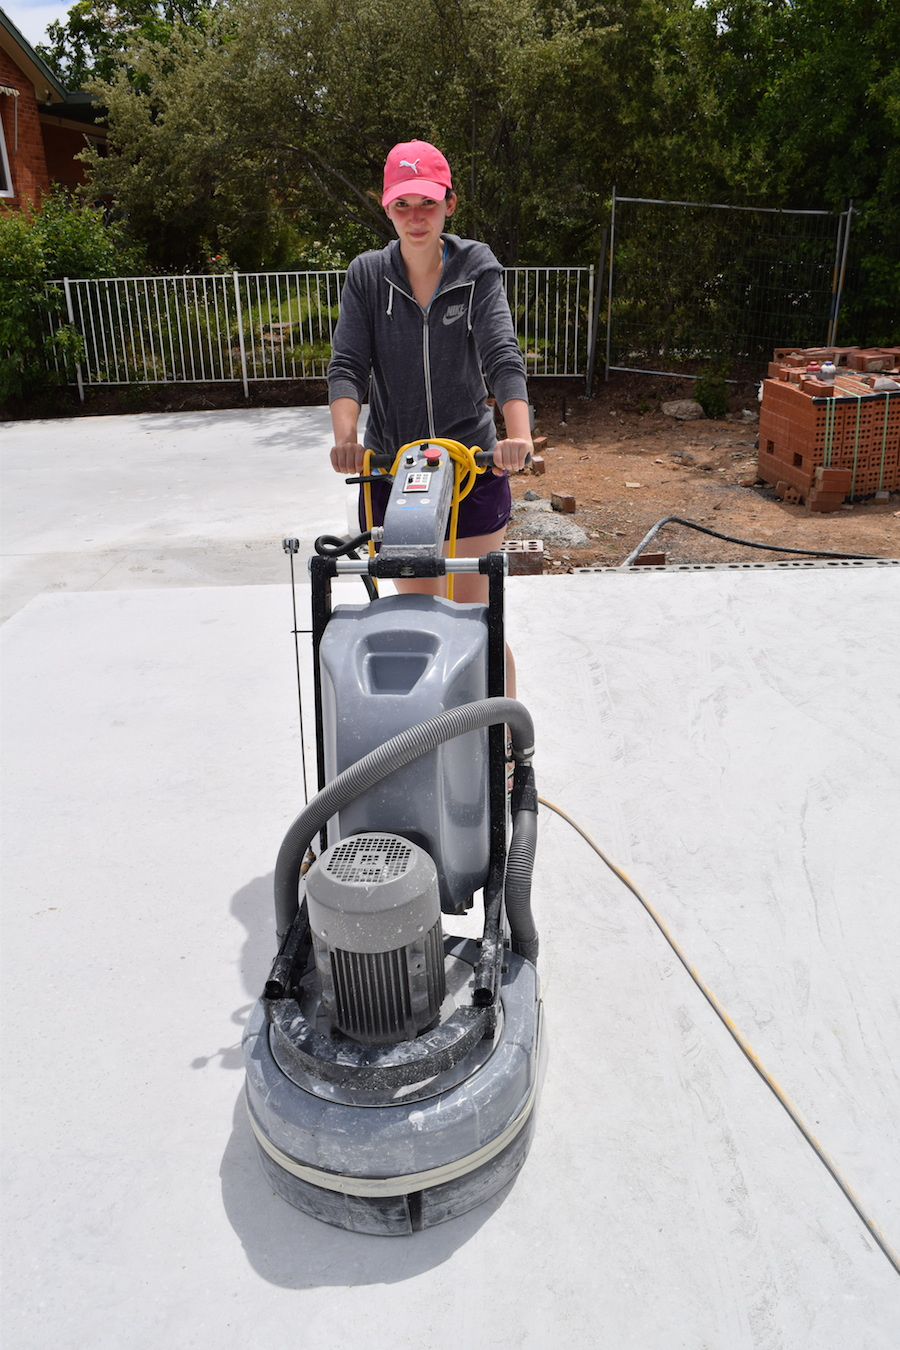 Gina using the concrete machine